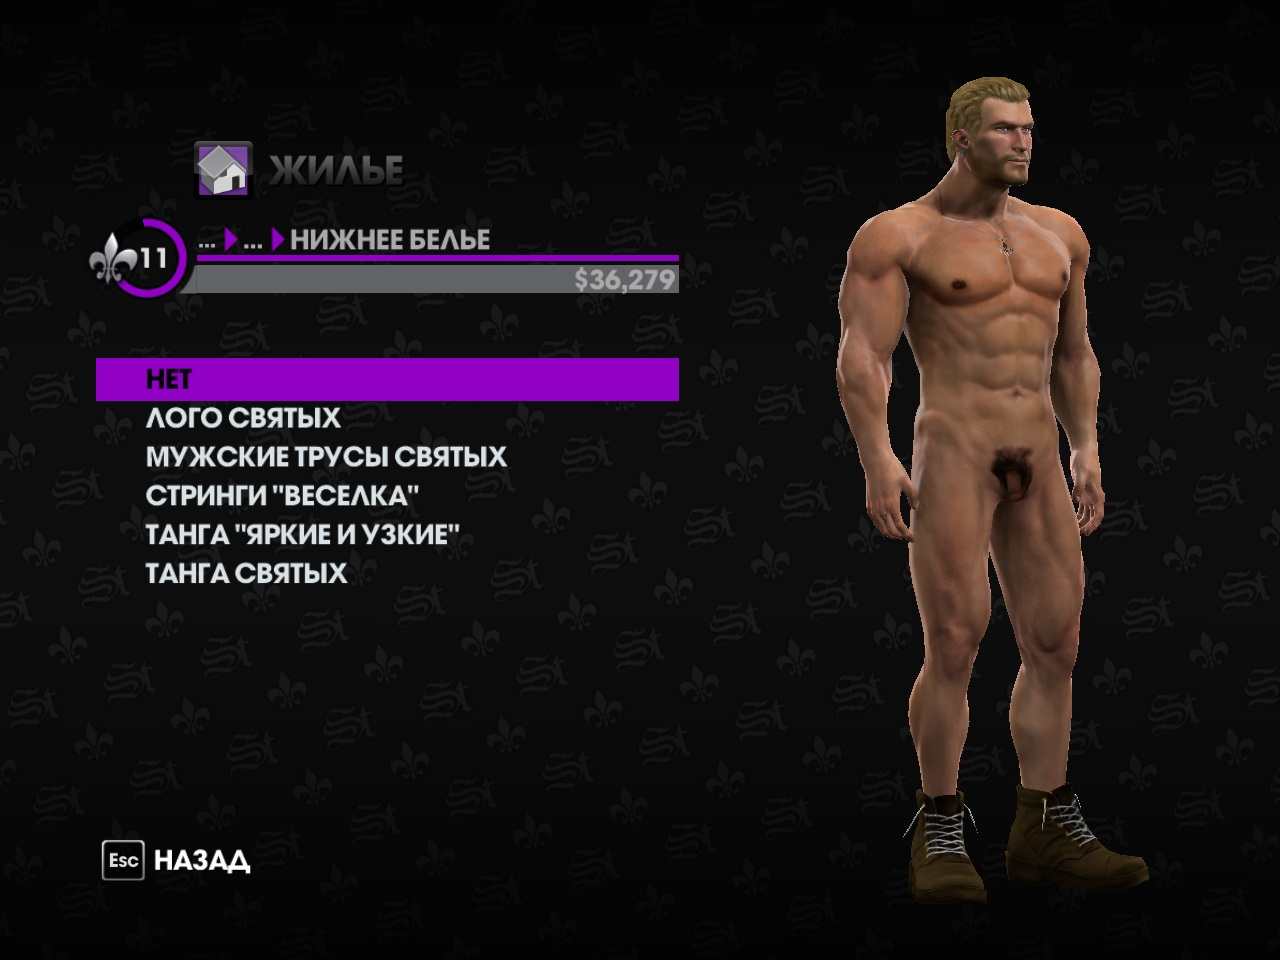 Saints row 3 naked mods cartoon movies